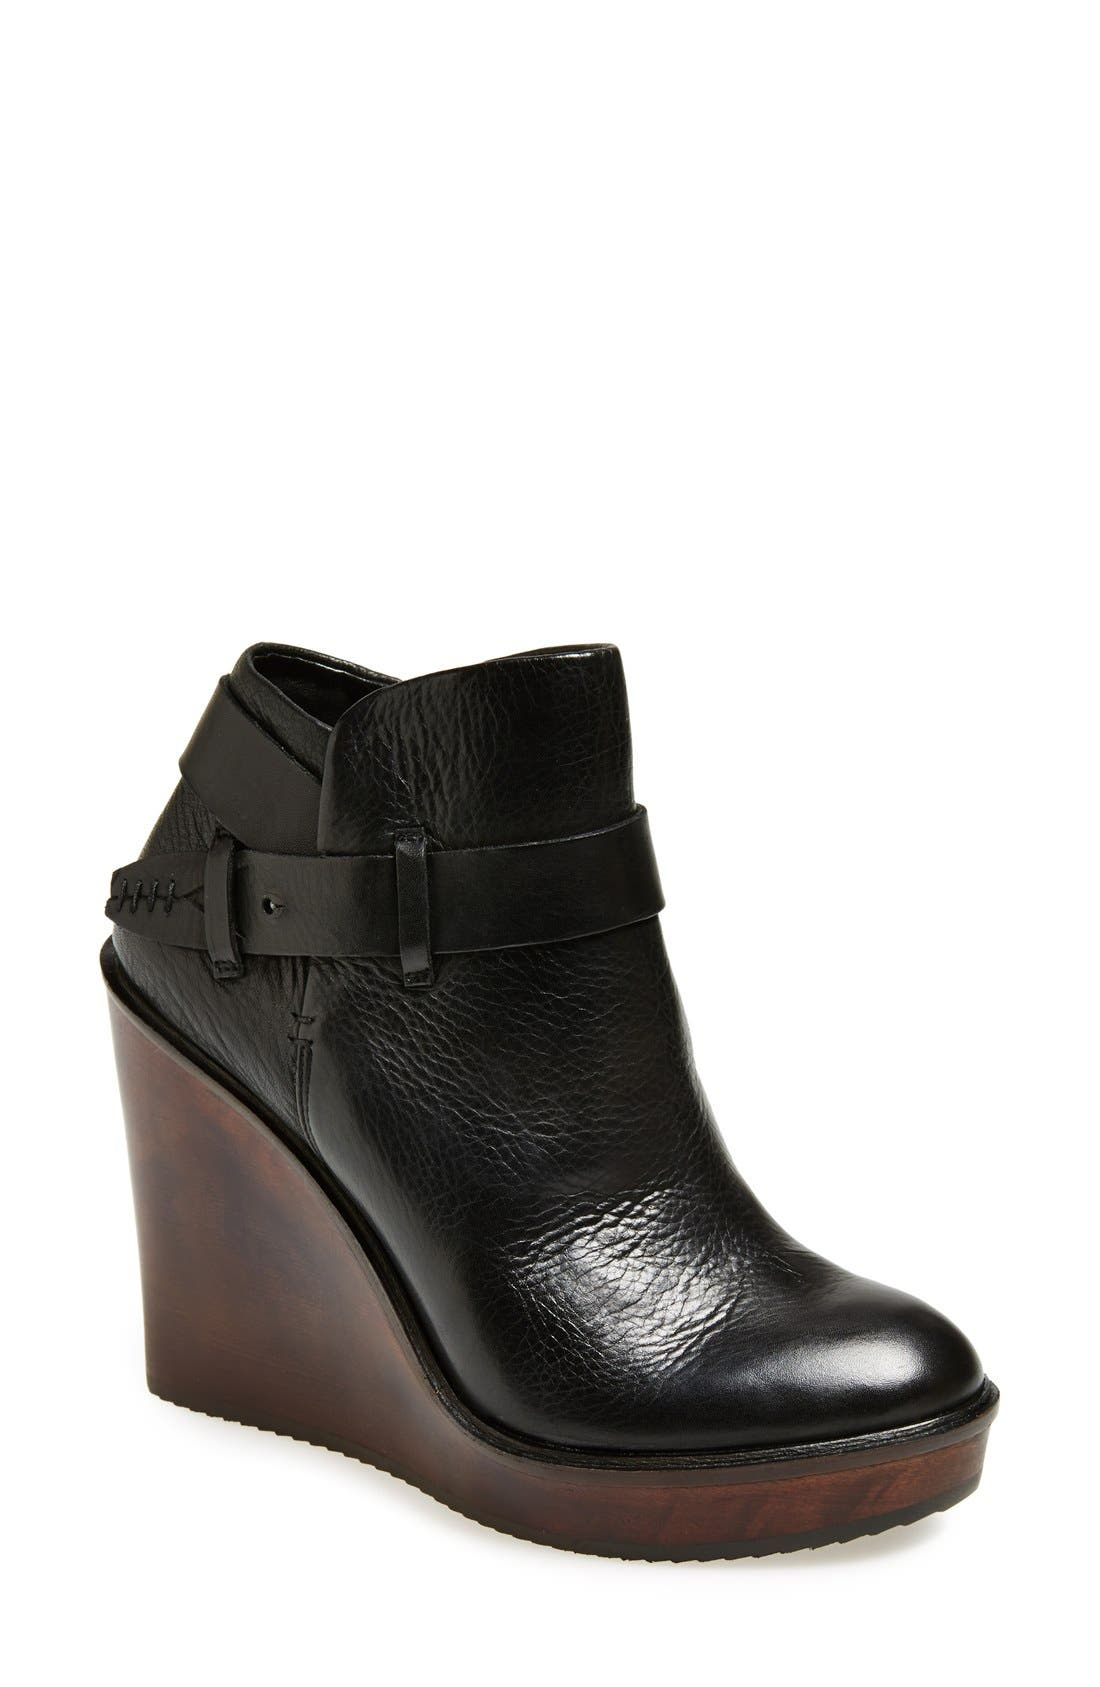 Alternate Image 1 Selected - Dolce Vita 'Colie' Wedge Bootie (Women)